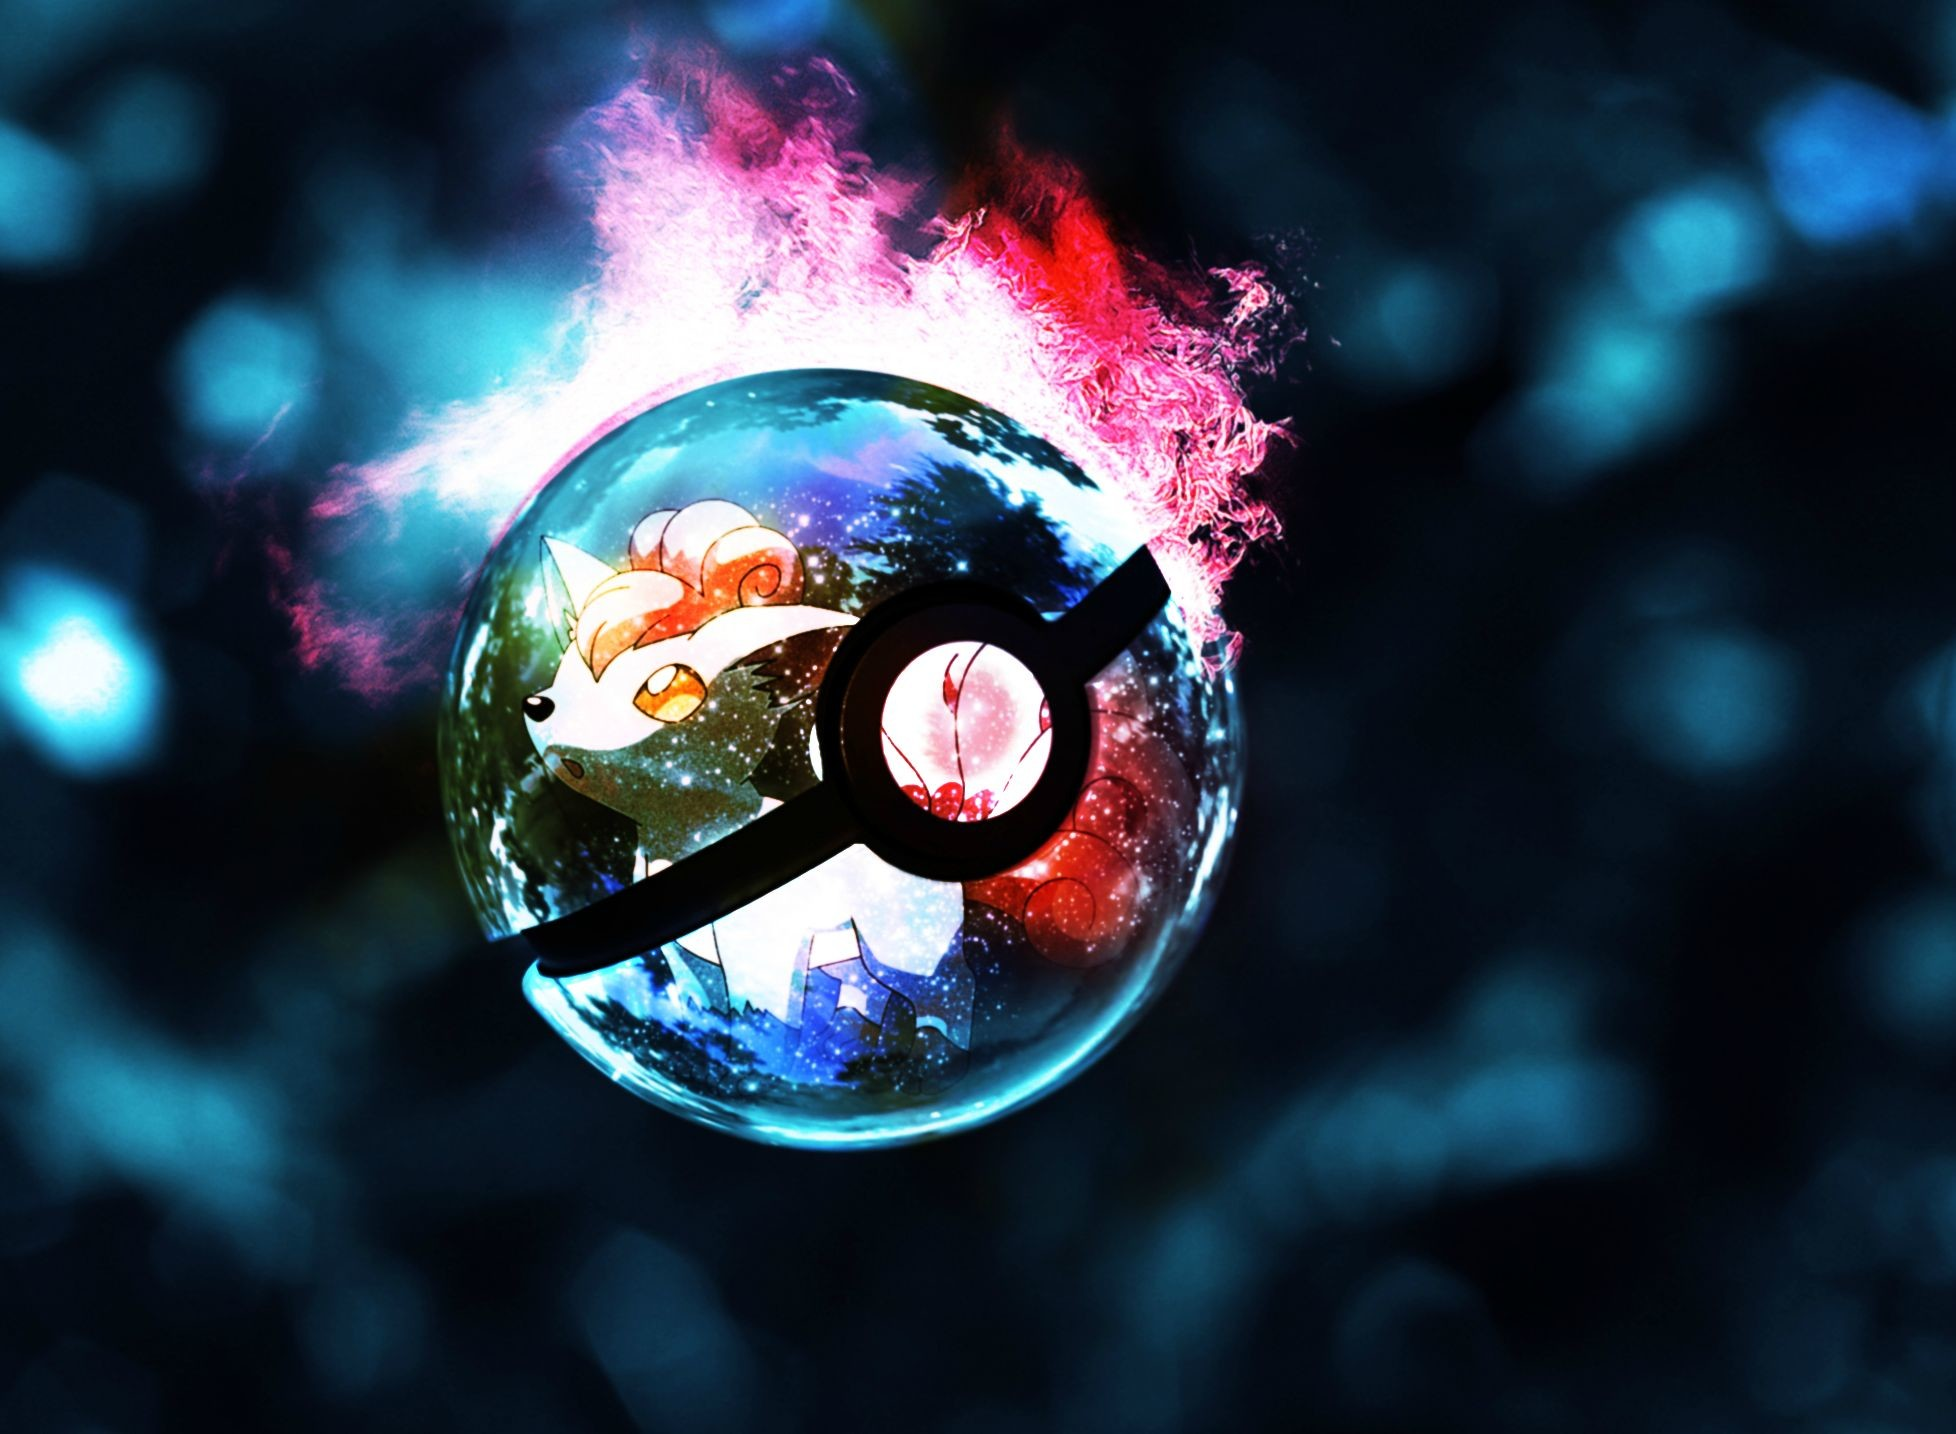 The Pokeballs came from a popular video game and anime series called Pokemon.  These balls are used by all trainers to catch and store pokemons.